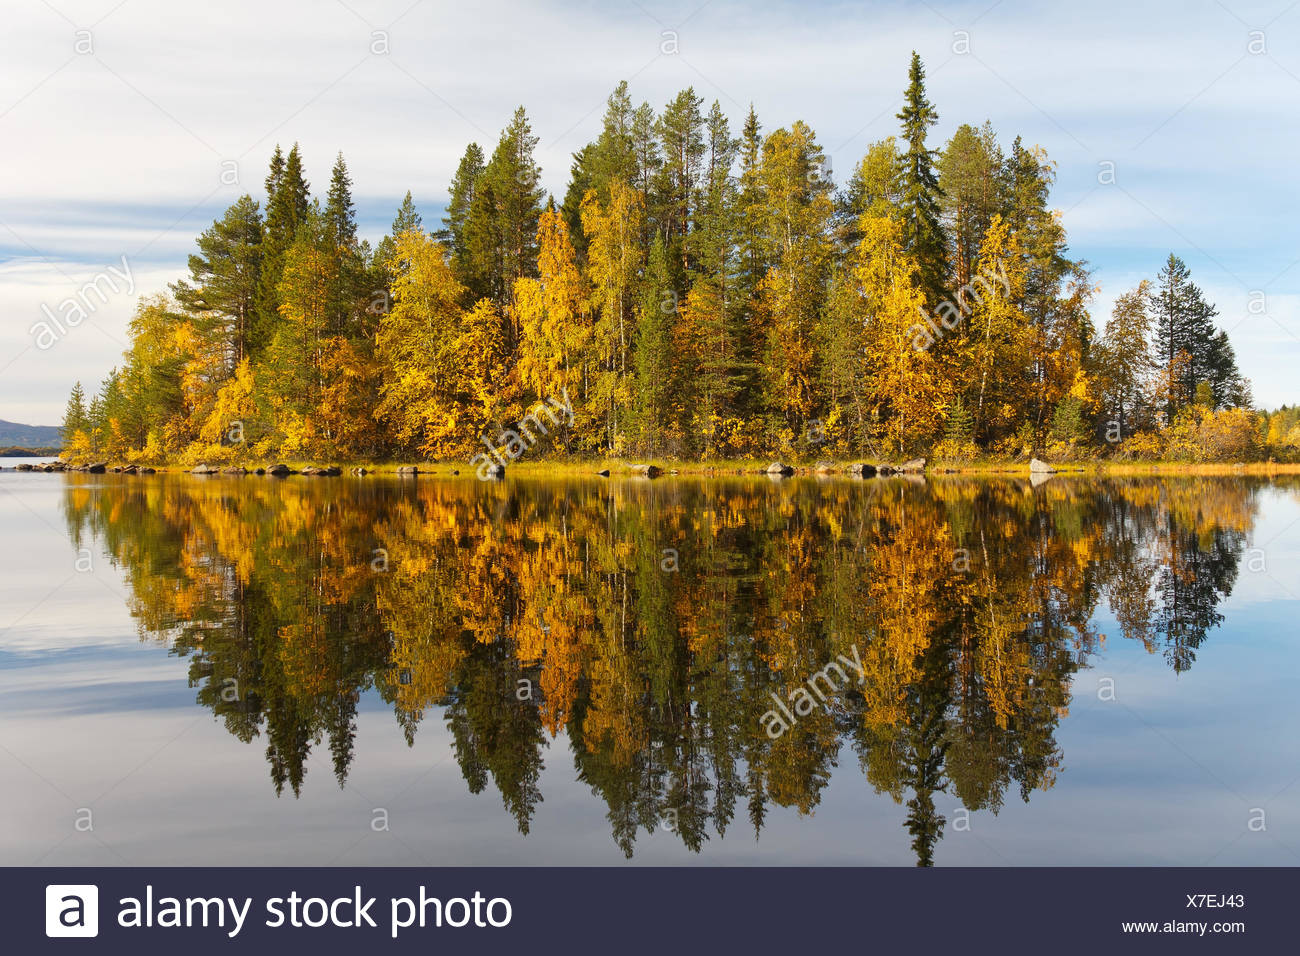 Autumn landscape with a reflection in the lake - Stock Image